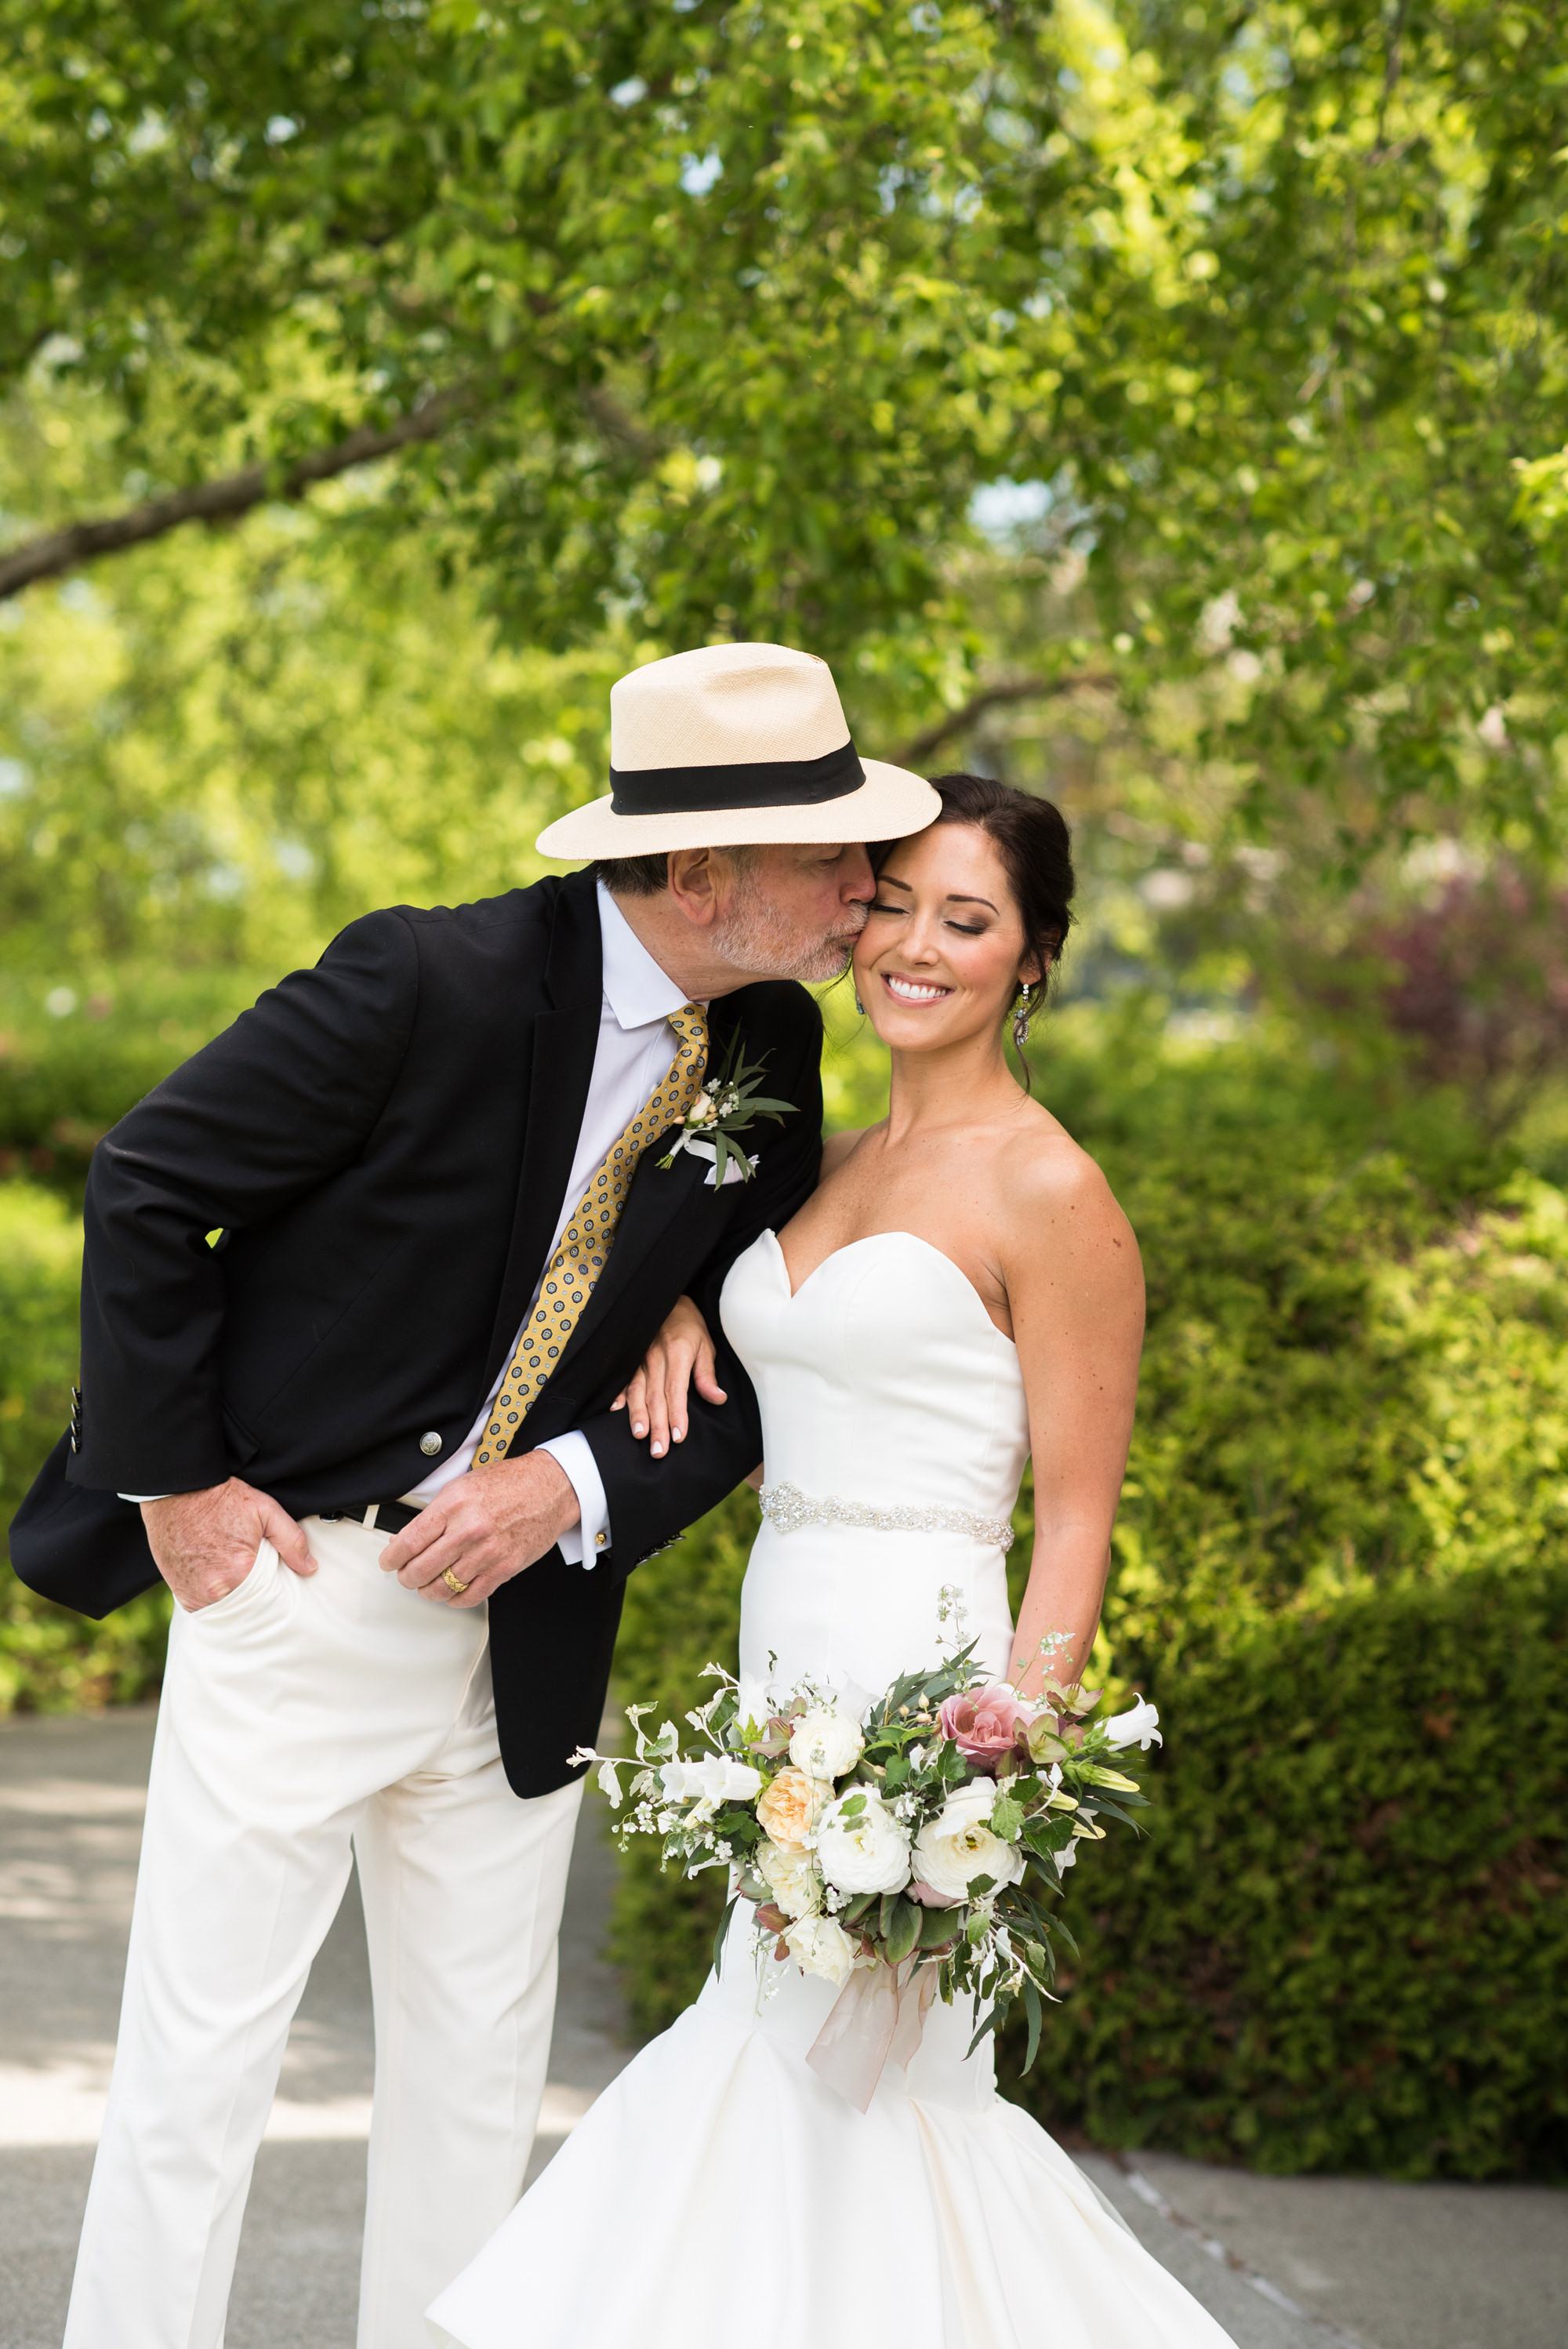 Classy couple kiss in garden - photo by Barbie Hull Photography